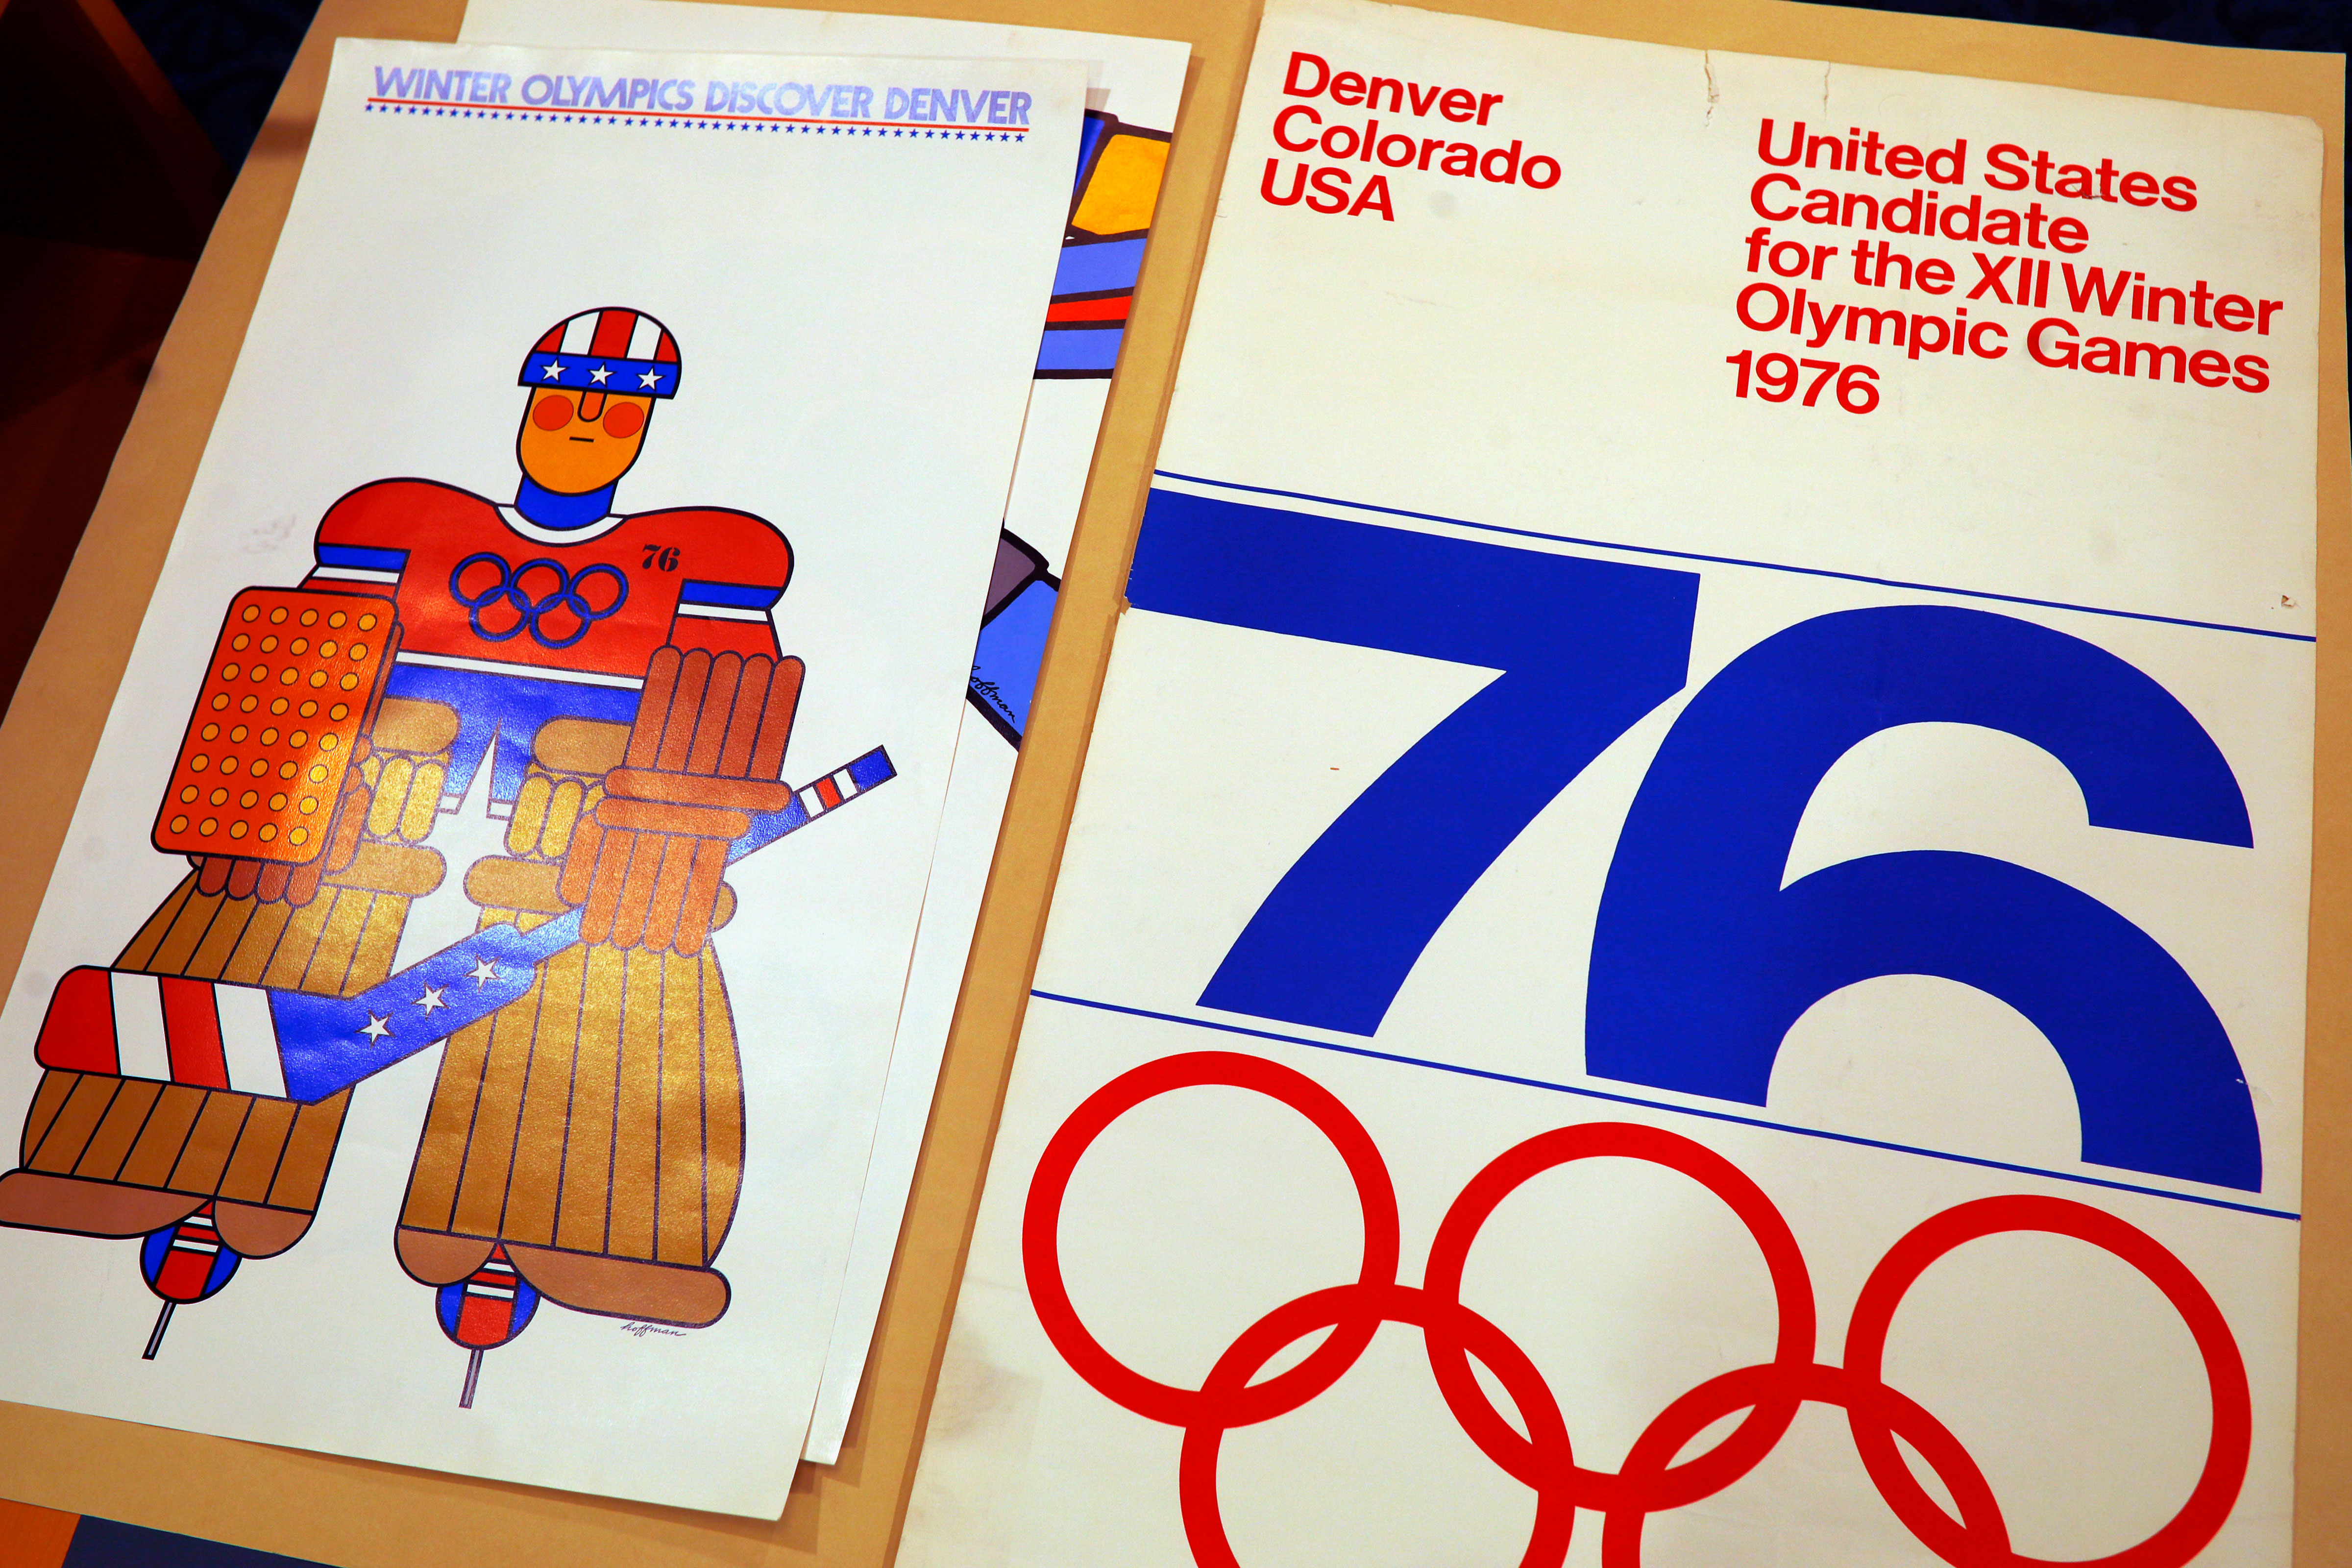 <p>One of the posters used in Colorado's effort to secure an Olympic bid in 1976 is part of the memorabilia collection of the Denver Public Library.</p>